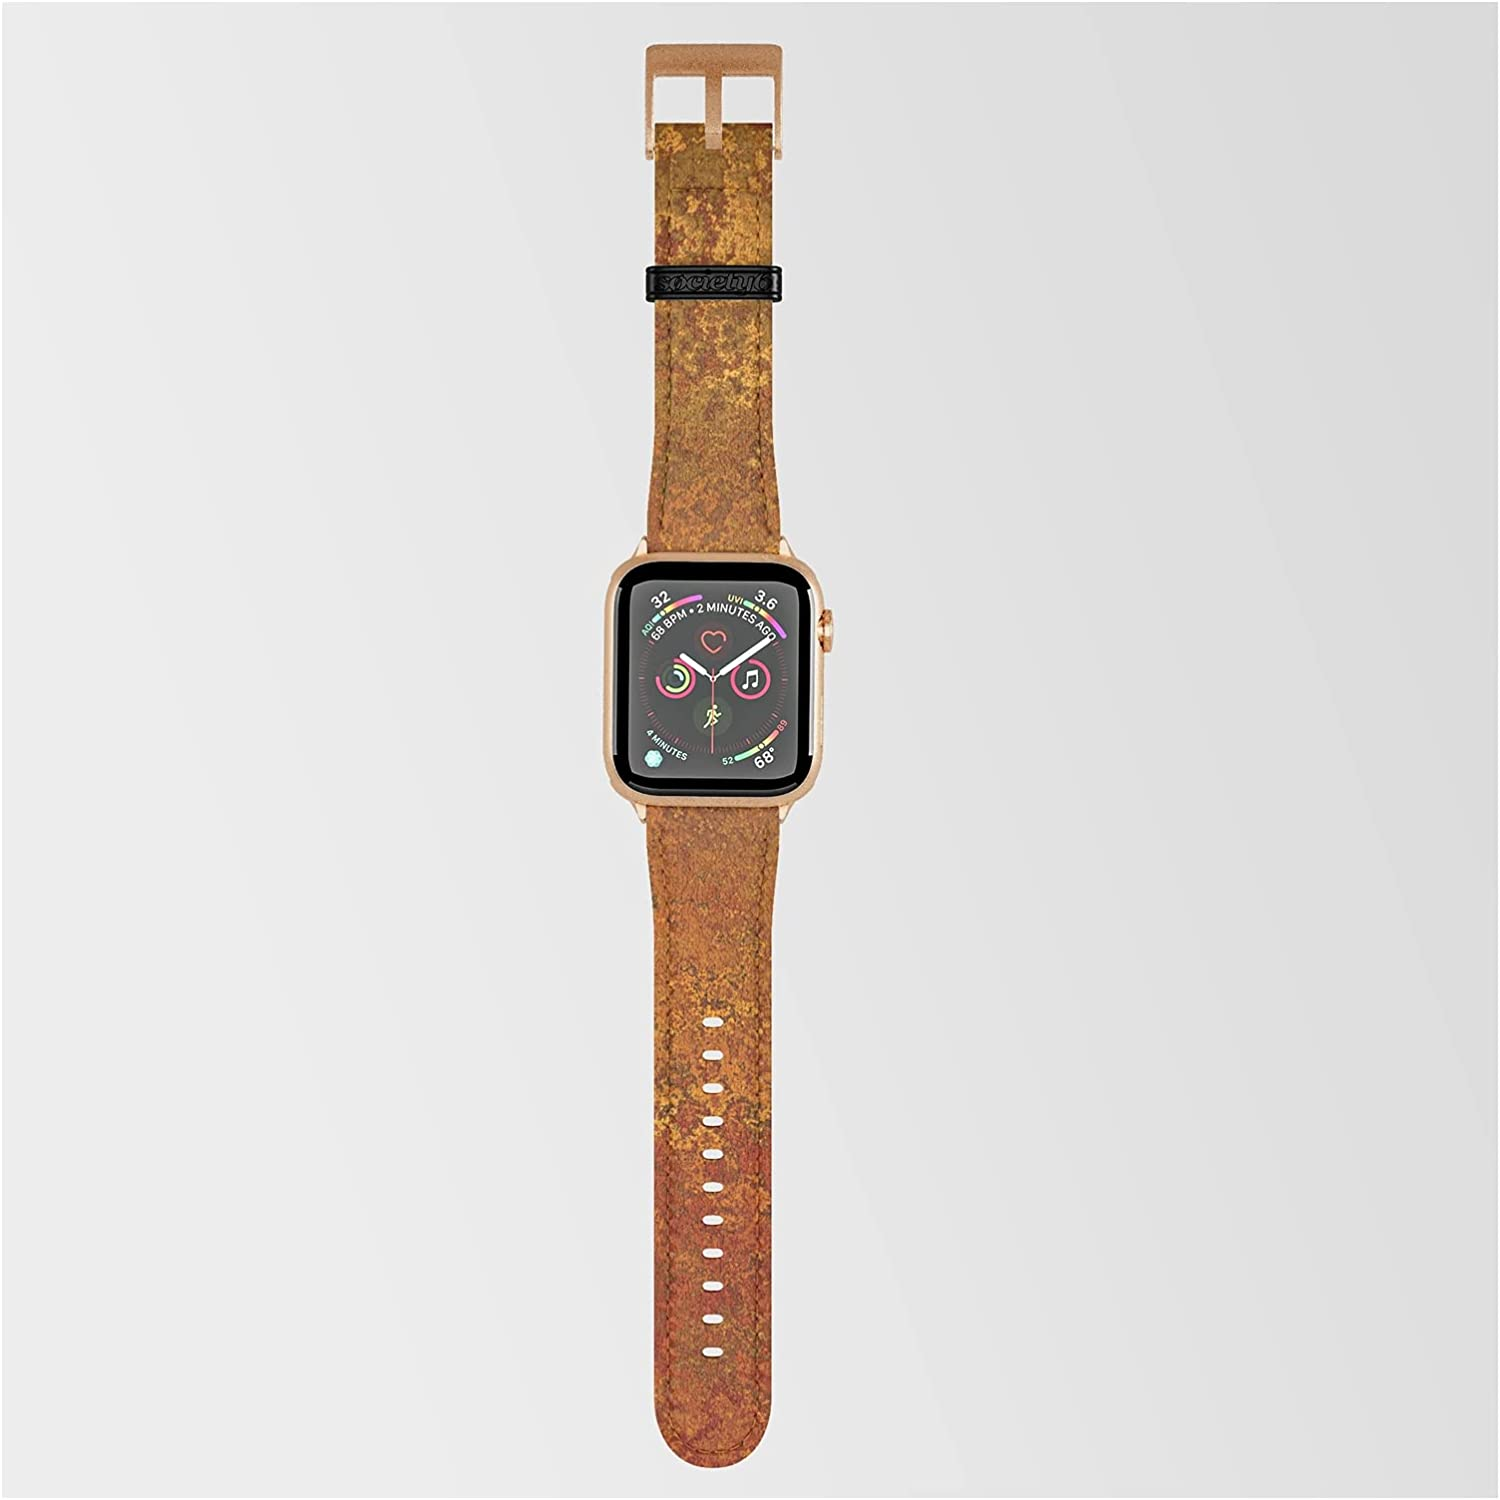 Vintage Copper Max 77% OFF Rust Special price for a limited time Minimalist Art Smartwatc Morris by Megan on